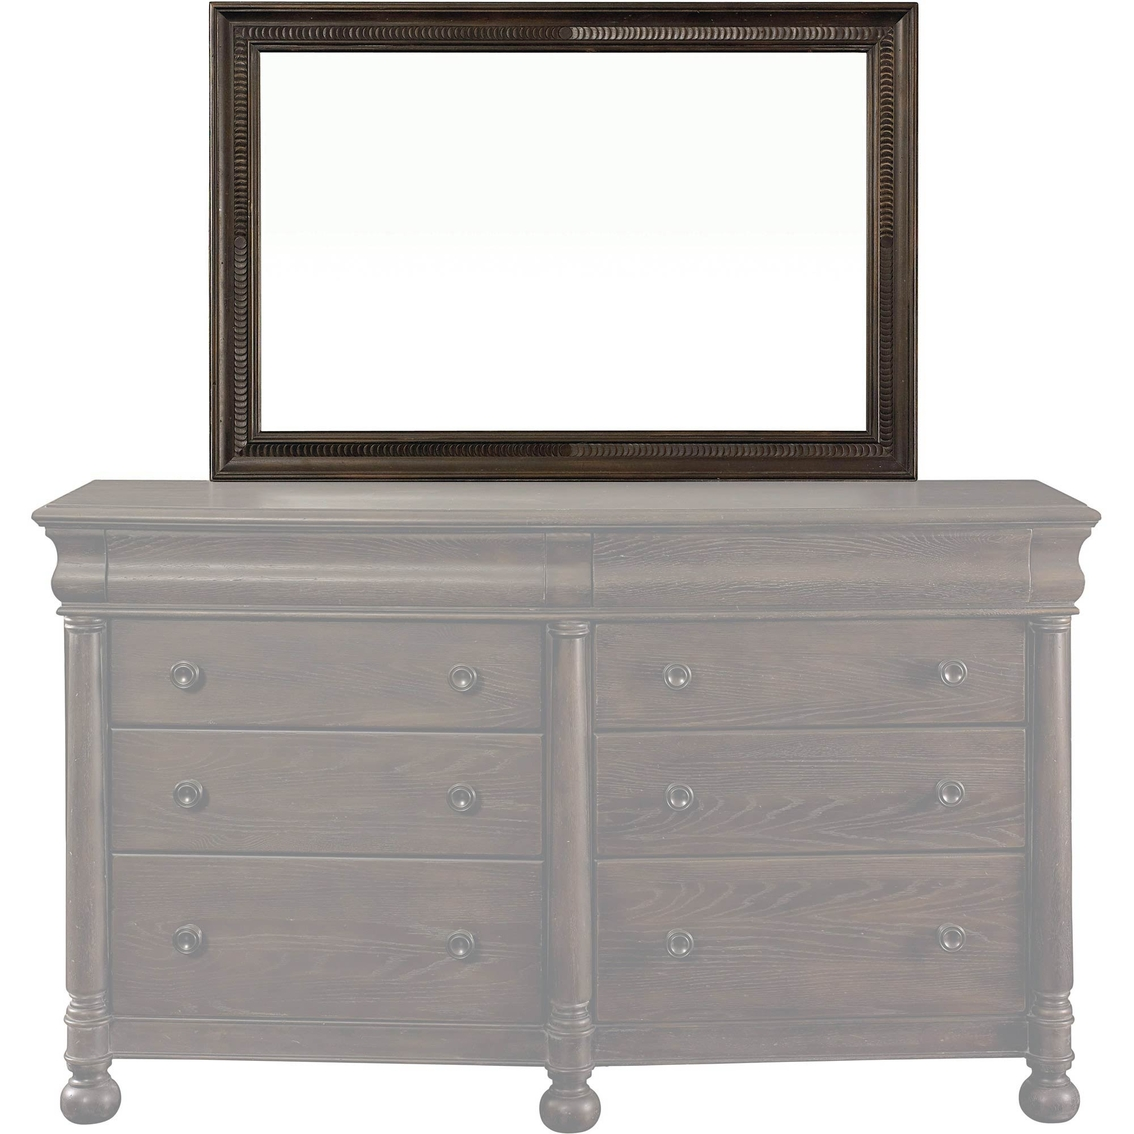 Bassett emporium landscape mirror dressers home for Furniture emporium